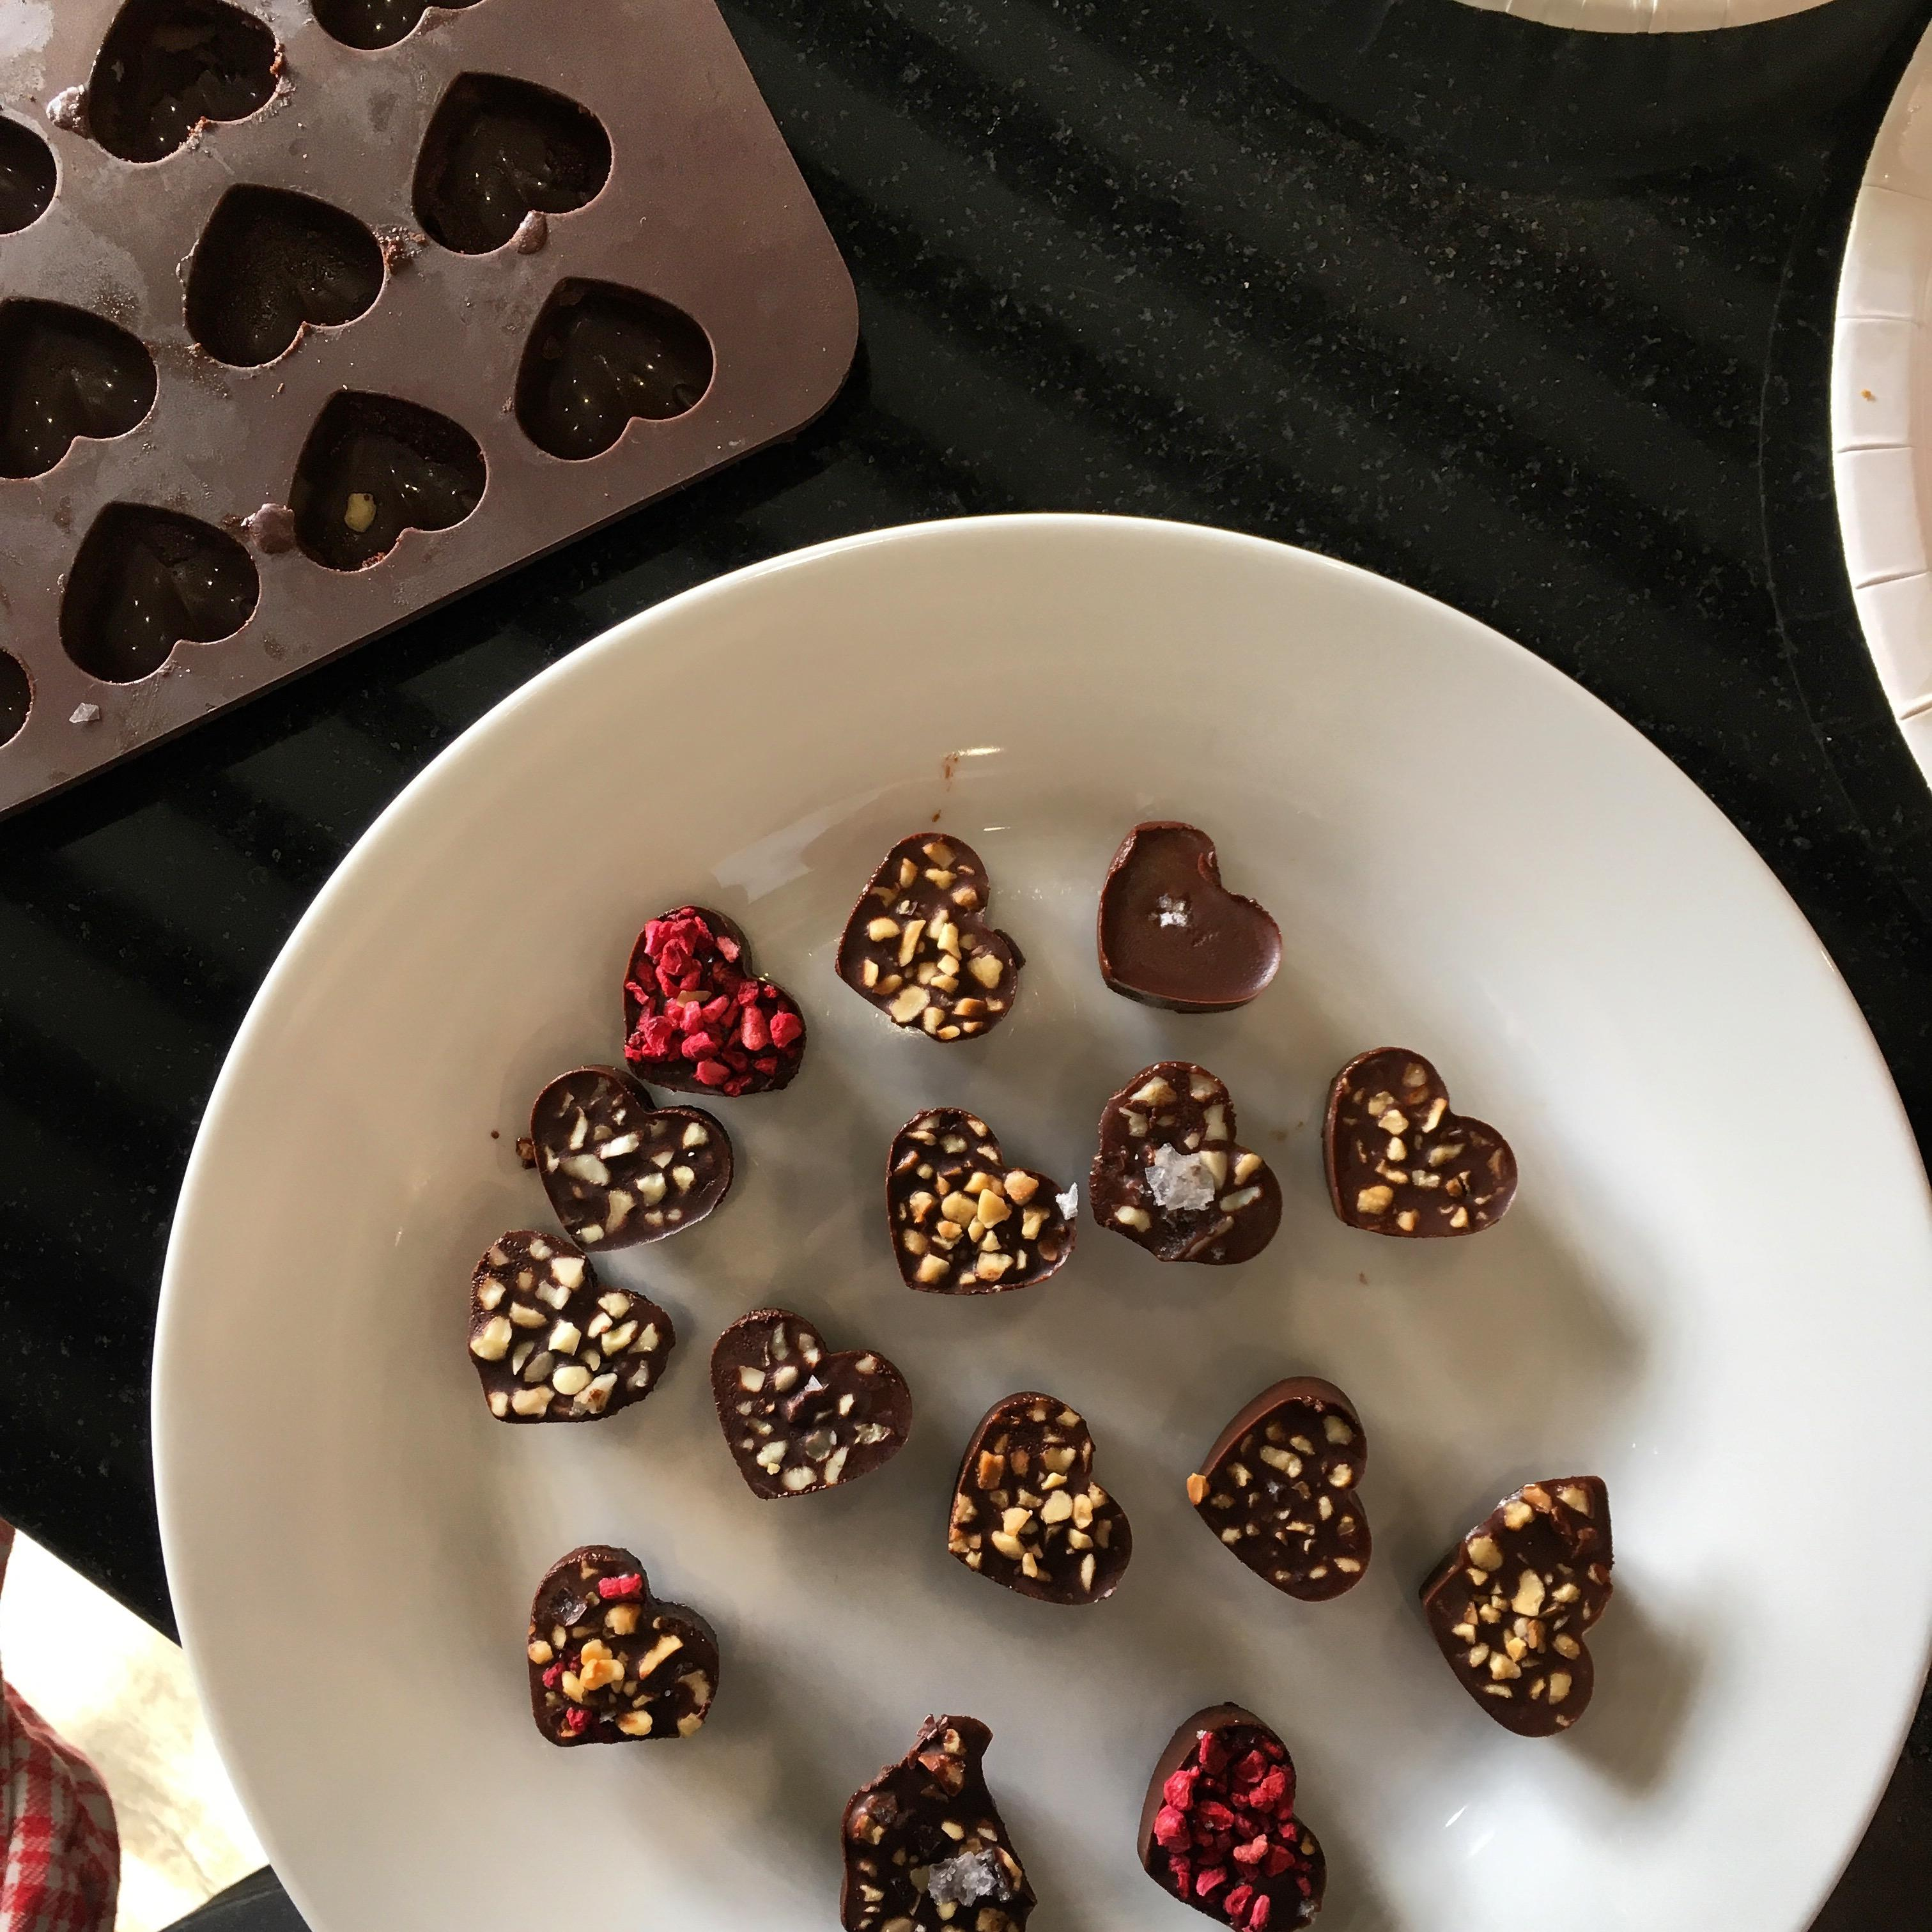 Edible Christmas presents workshop